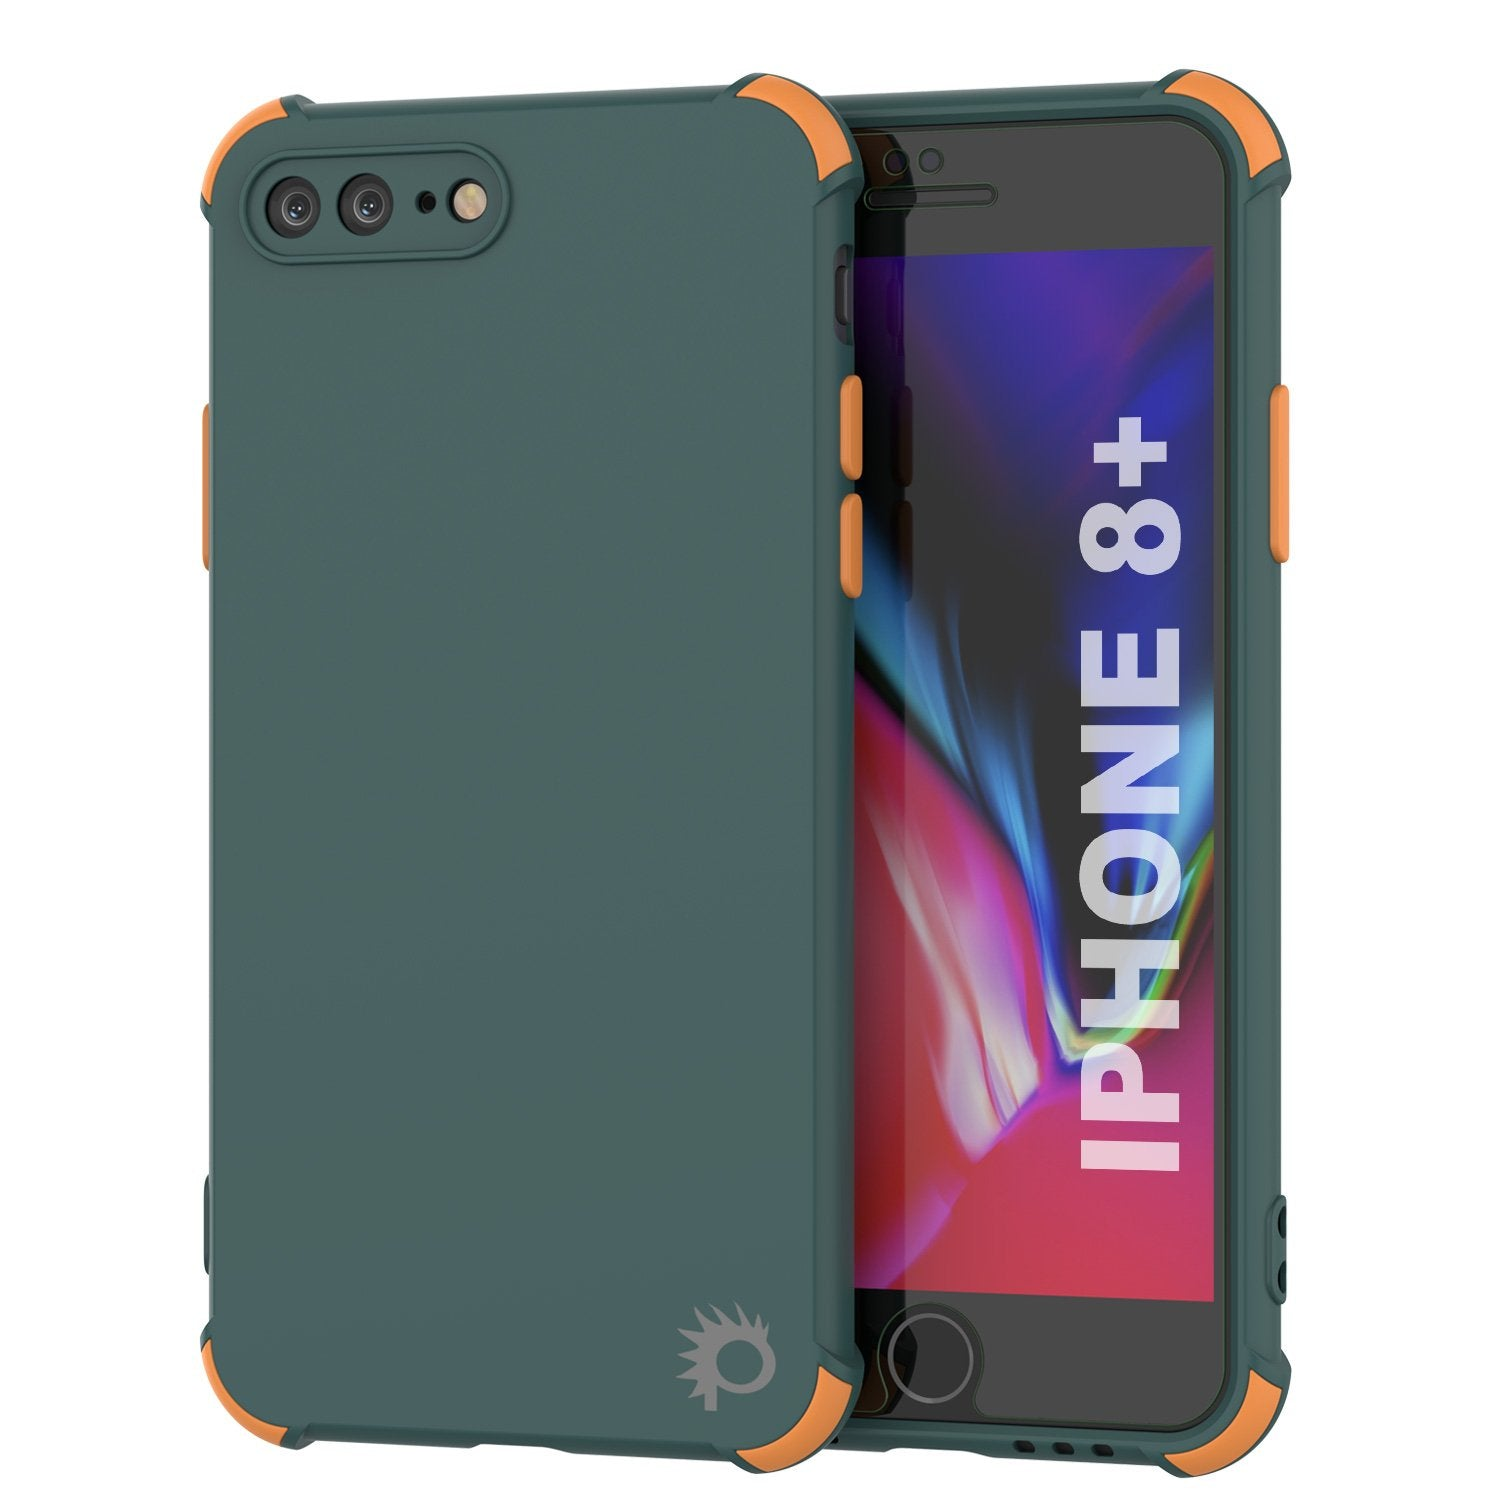 Punkcase Protective & Lightweight TPU Case [Sunshine Series] for iPhone 8+ Plus [Dark Green]